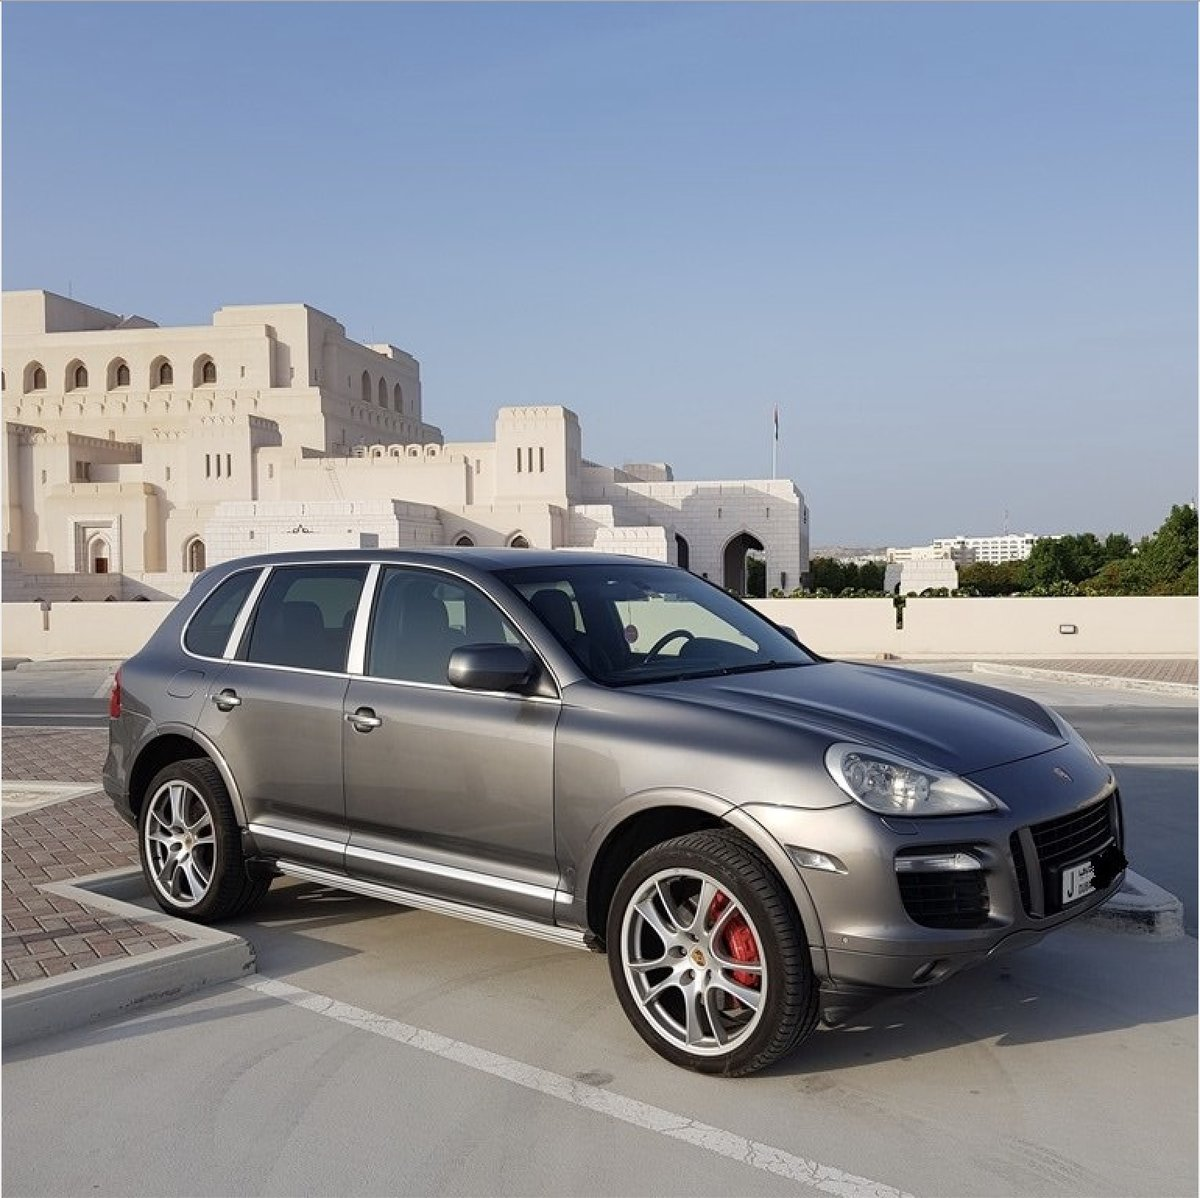 2008 Cayenne Turbo. Full service history. For Sale (picture 1 of 6)